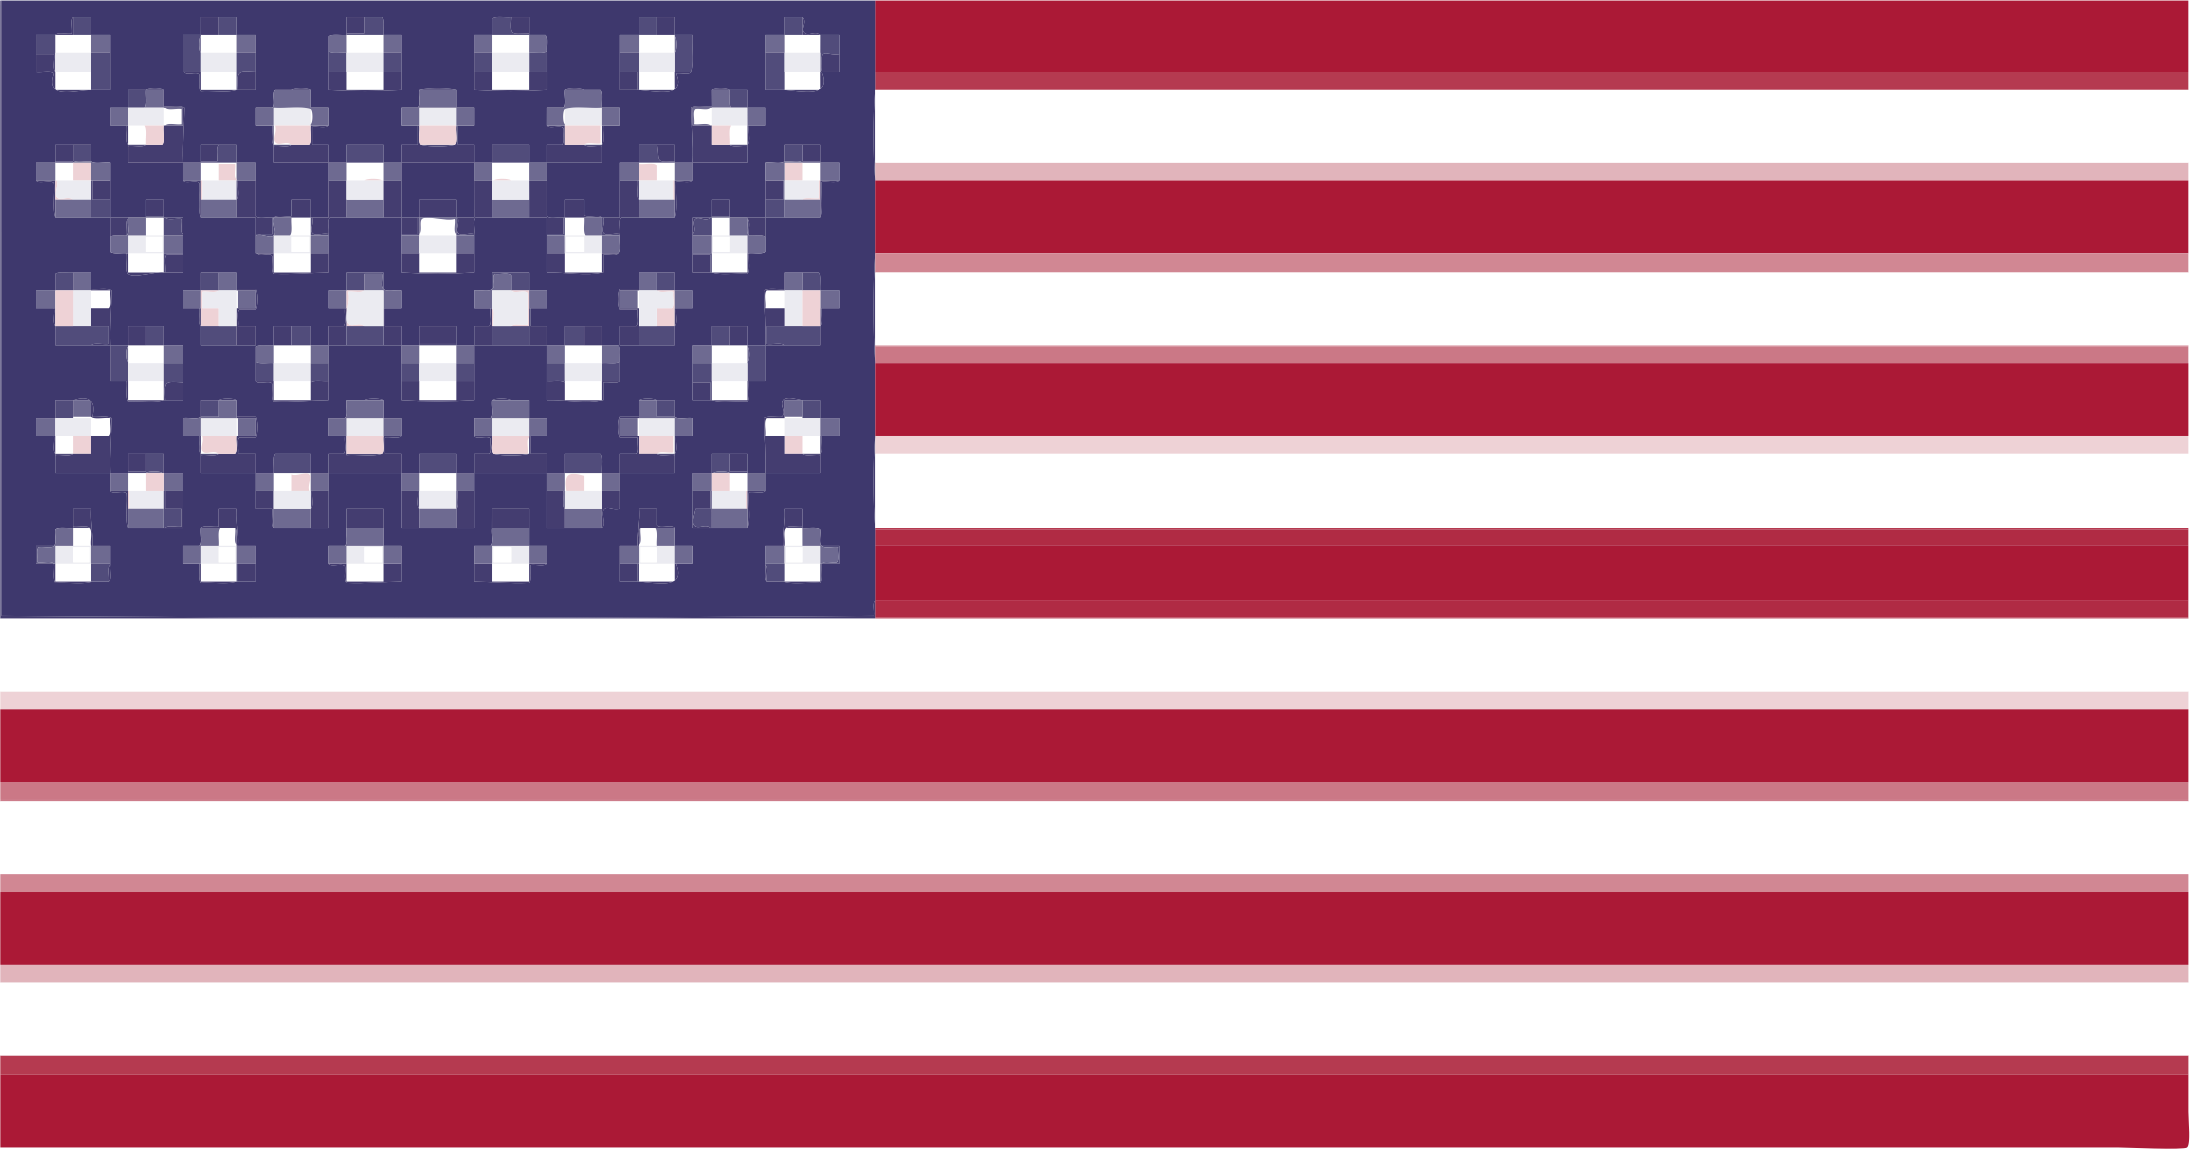 Pixelated Flag by jgm104